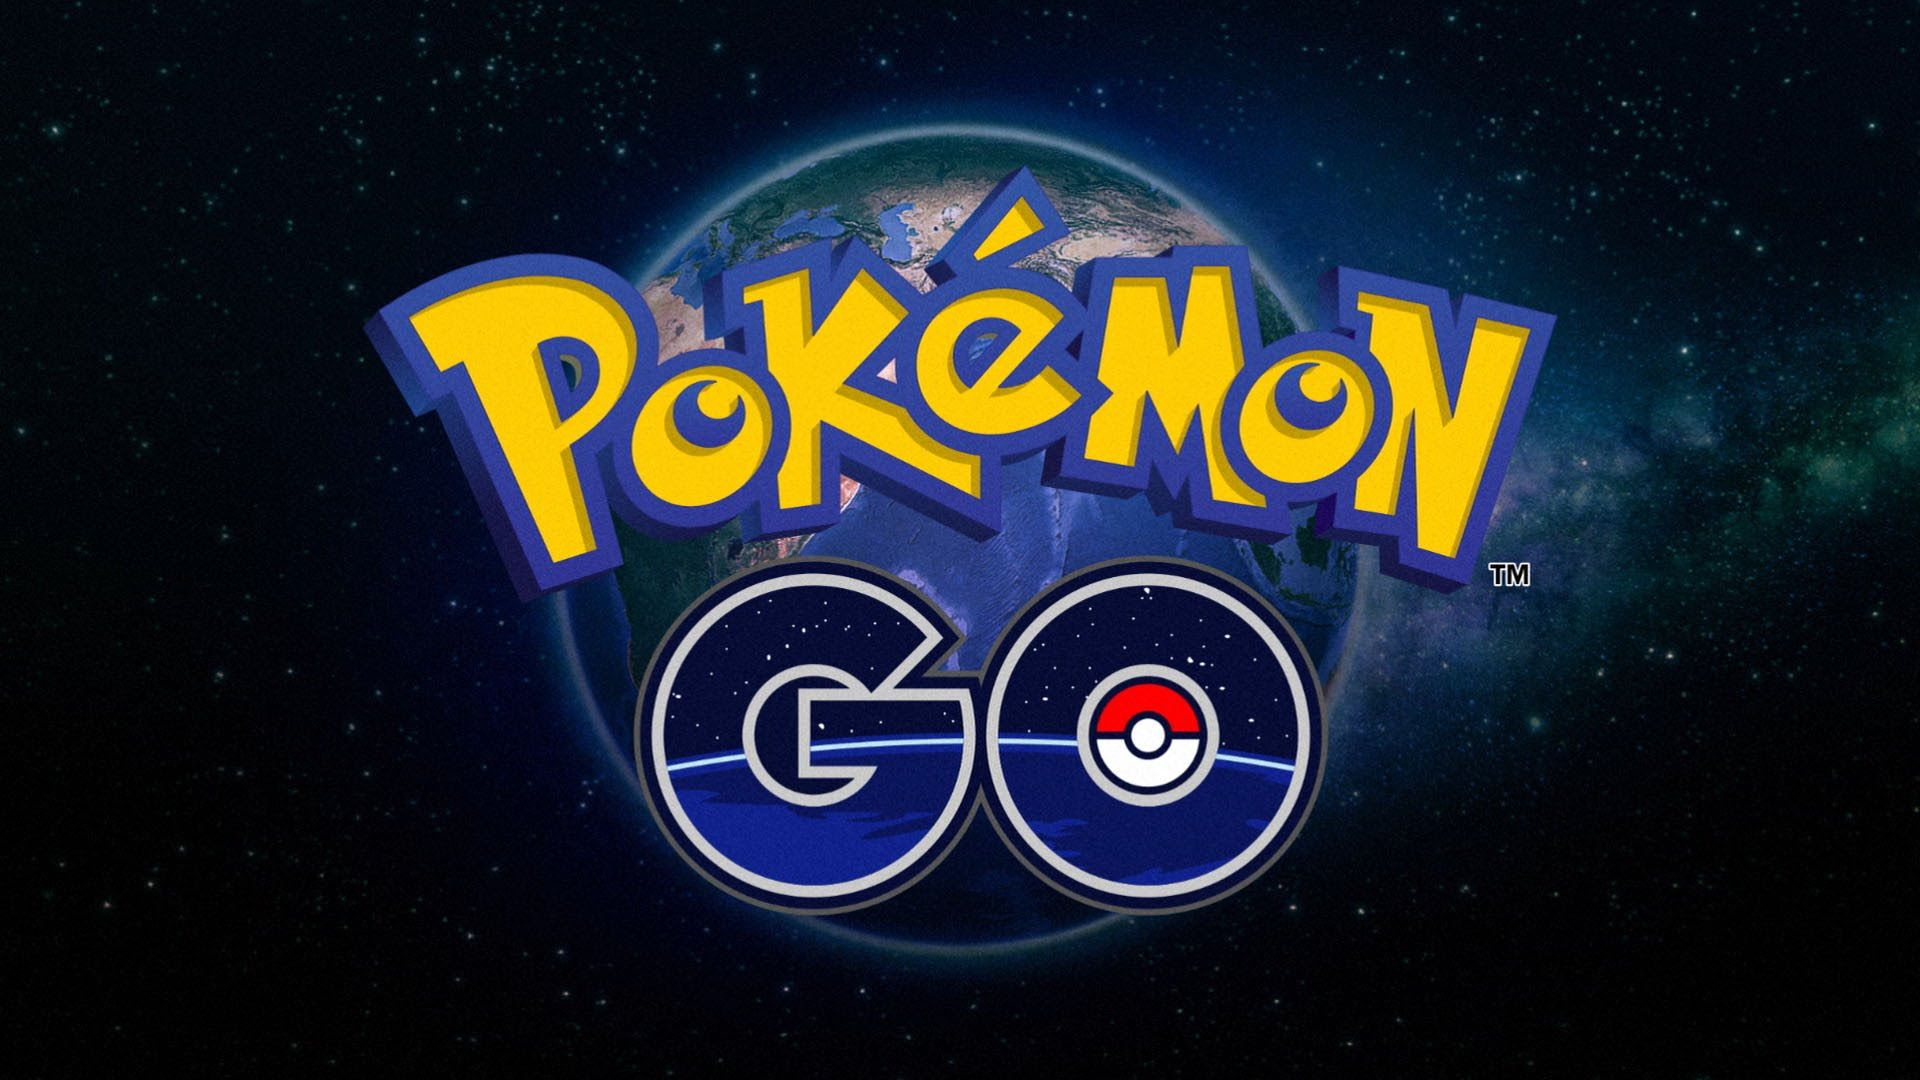 Discover Pokémon In The Real World With Pokémon Go Pokemon New Pokemon Pokemon Go